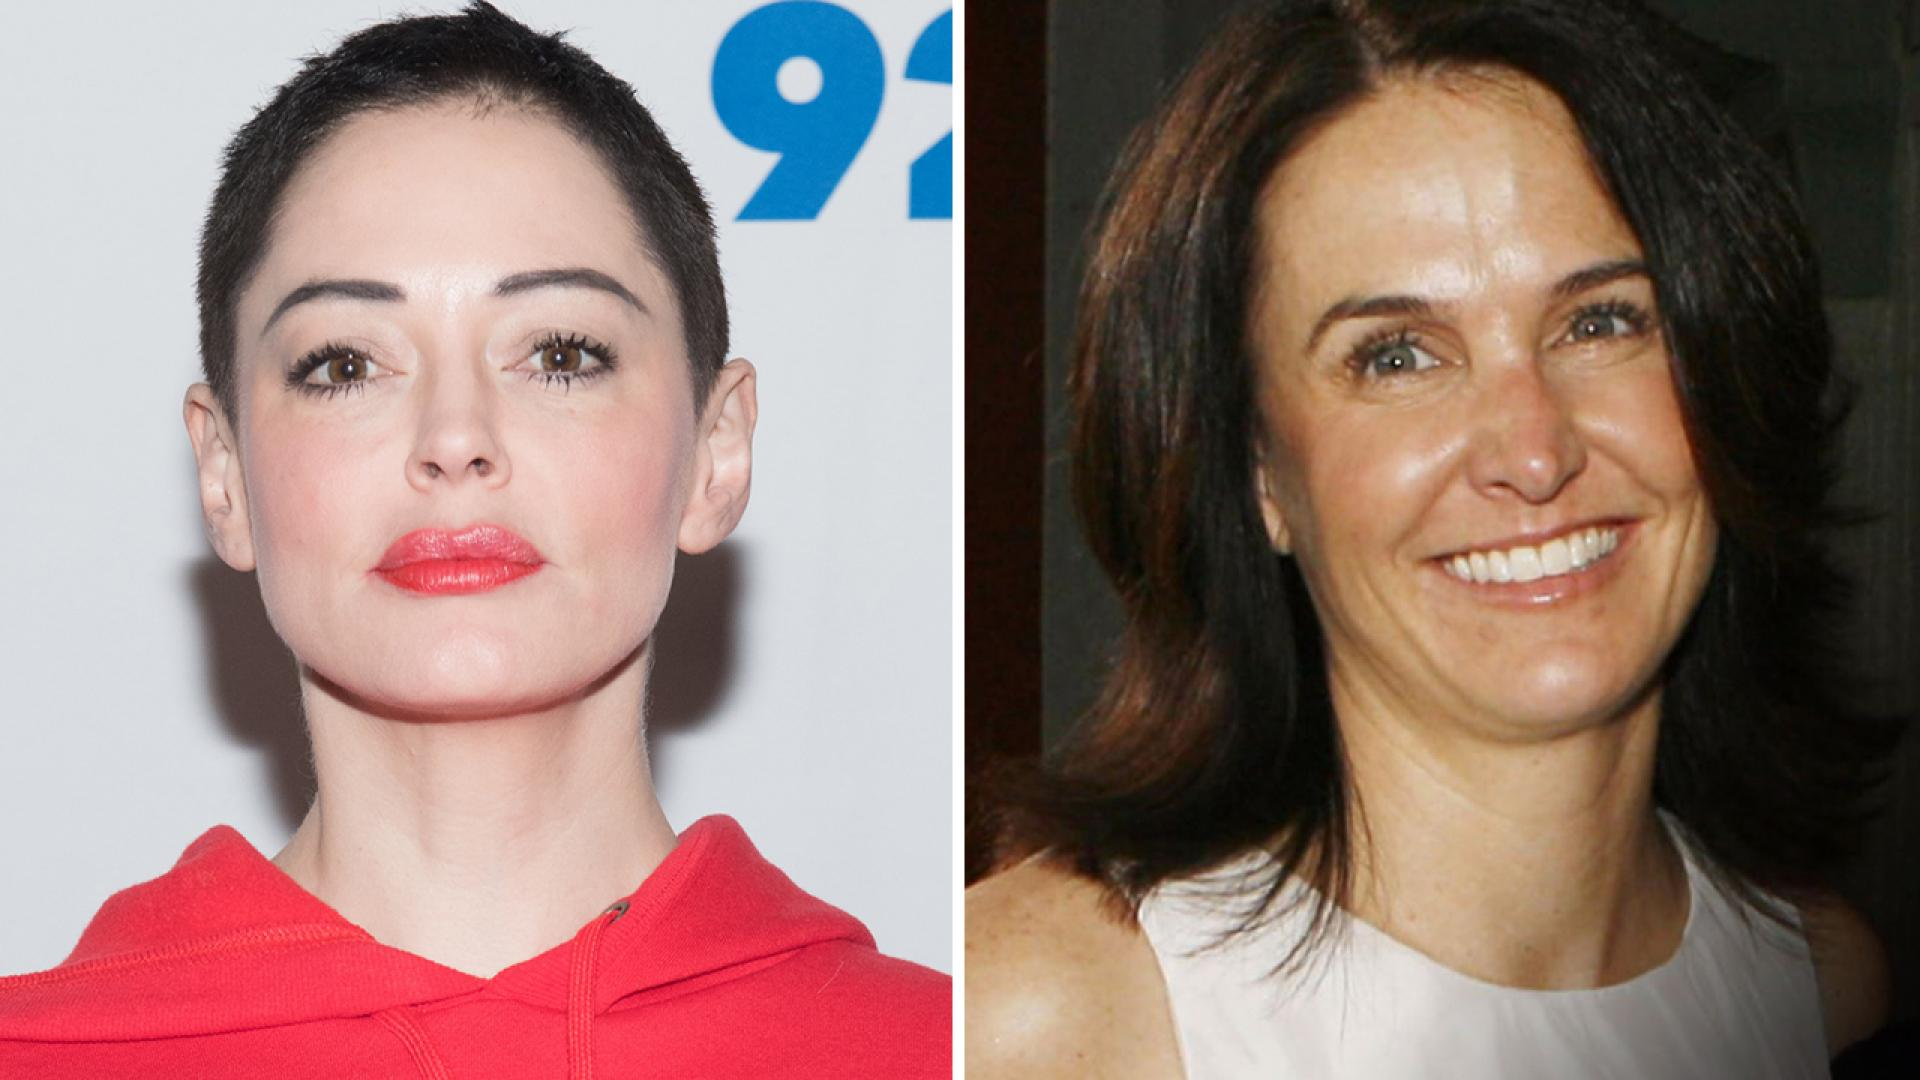 Rose McGowan paid tribute on social media to her former manager Jill Messick three days after the mother of two died by suicide.